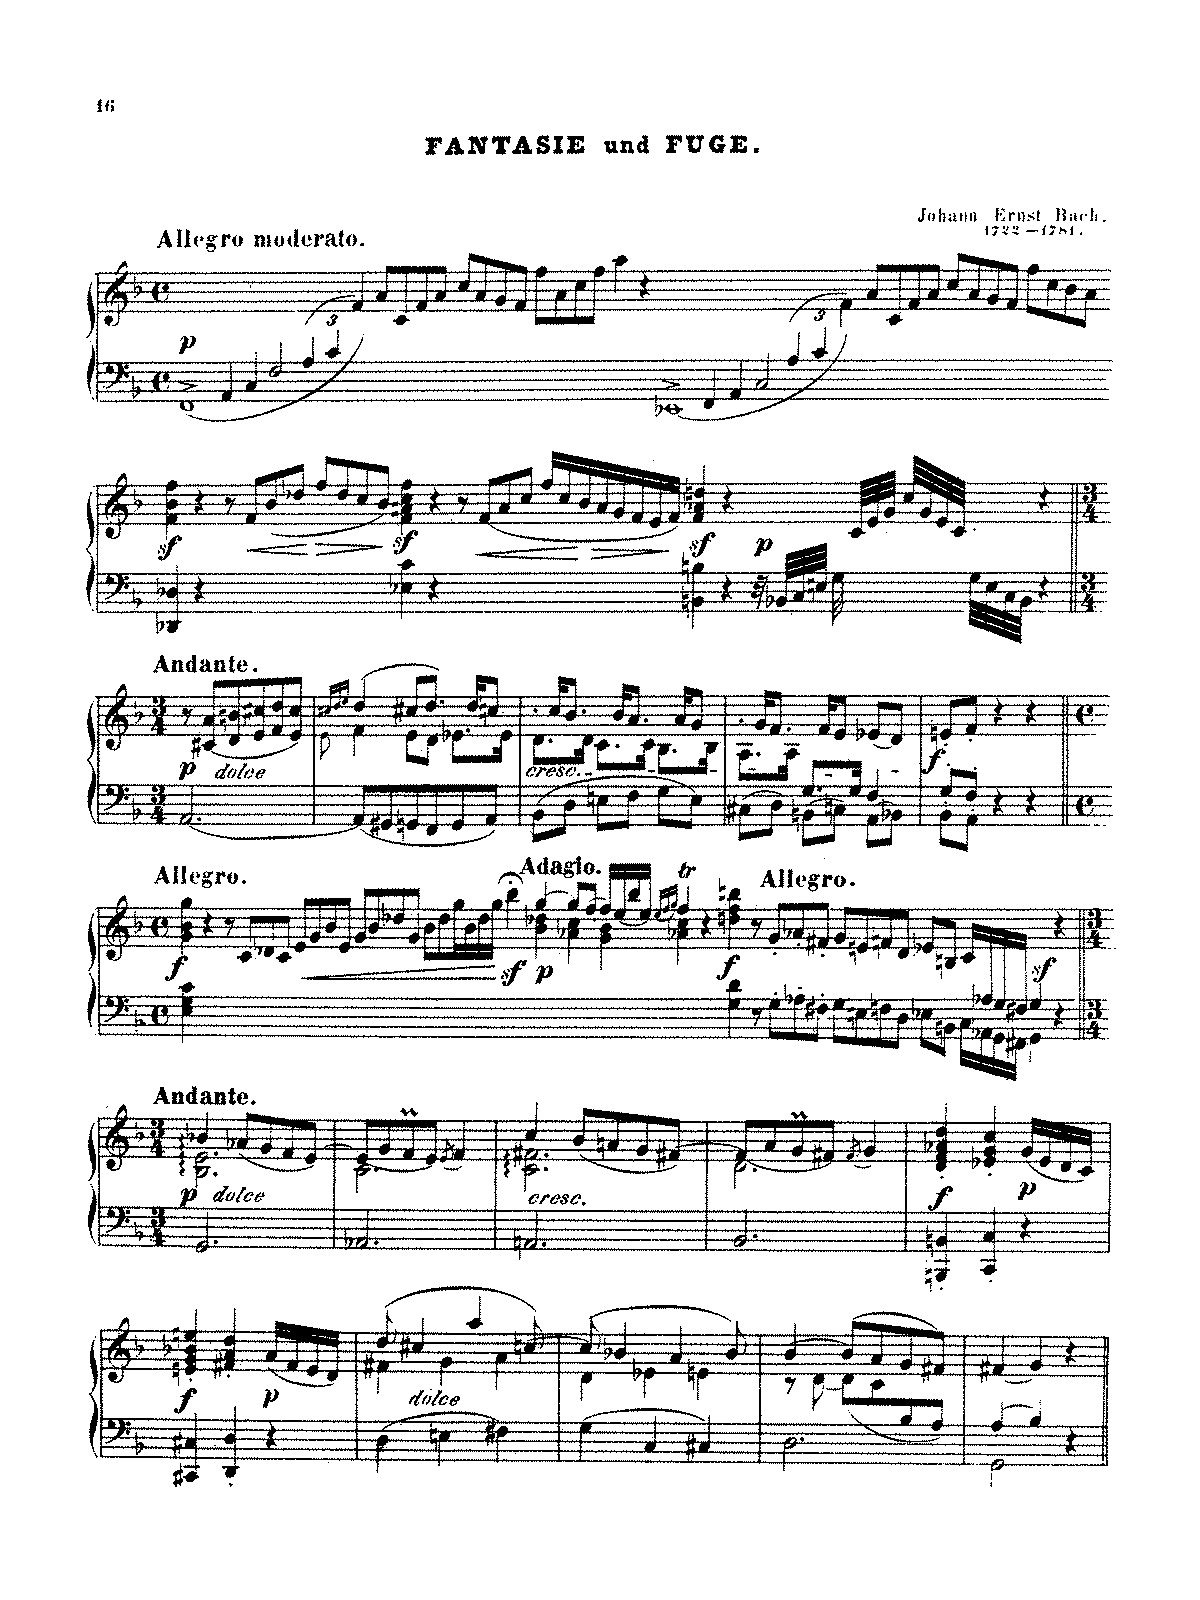 Bach, J. Ernst Fantasia and Fugue in F.pdf